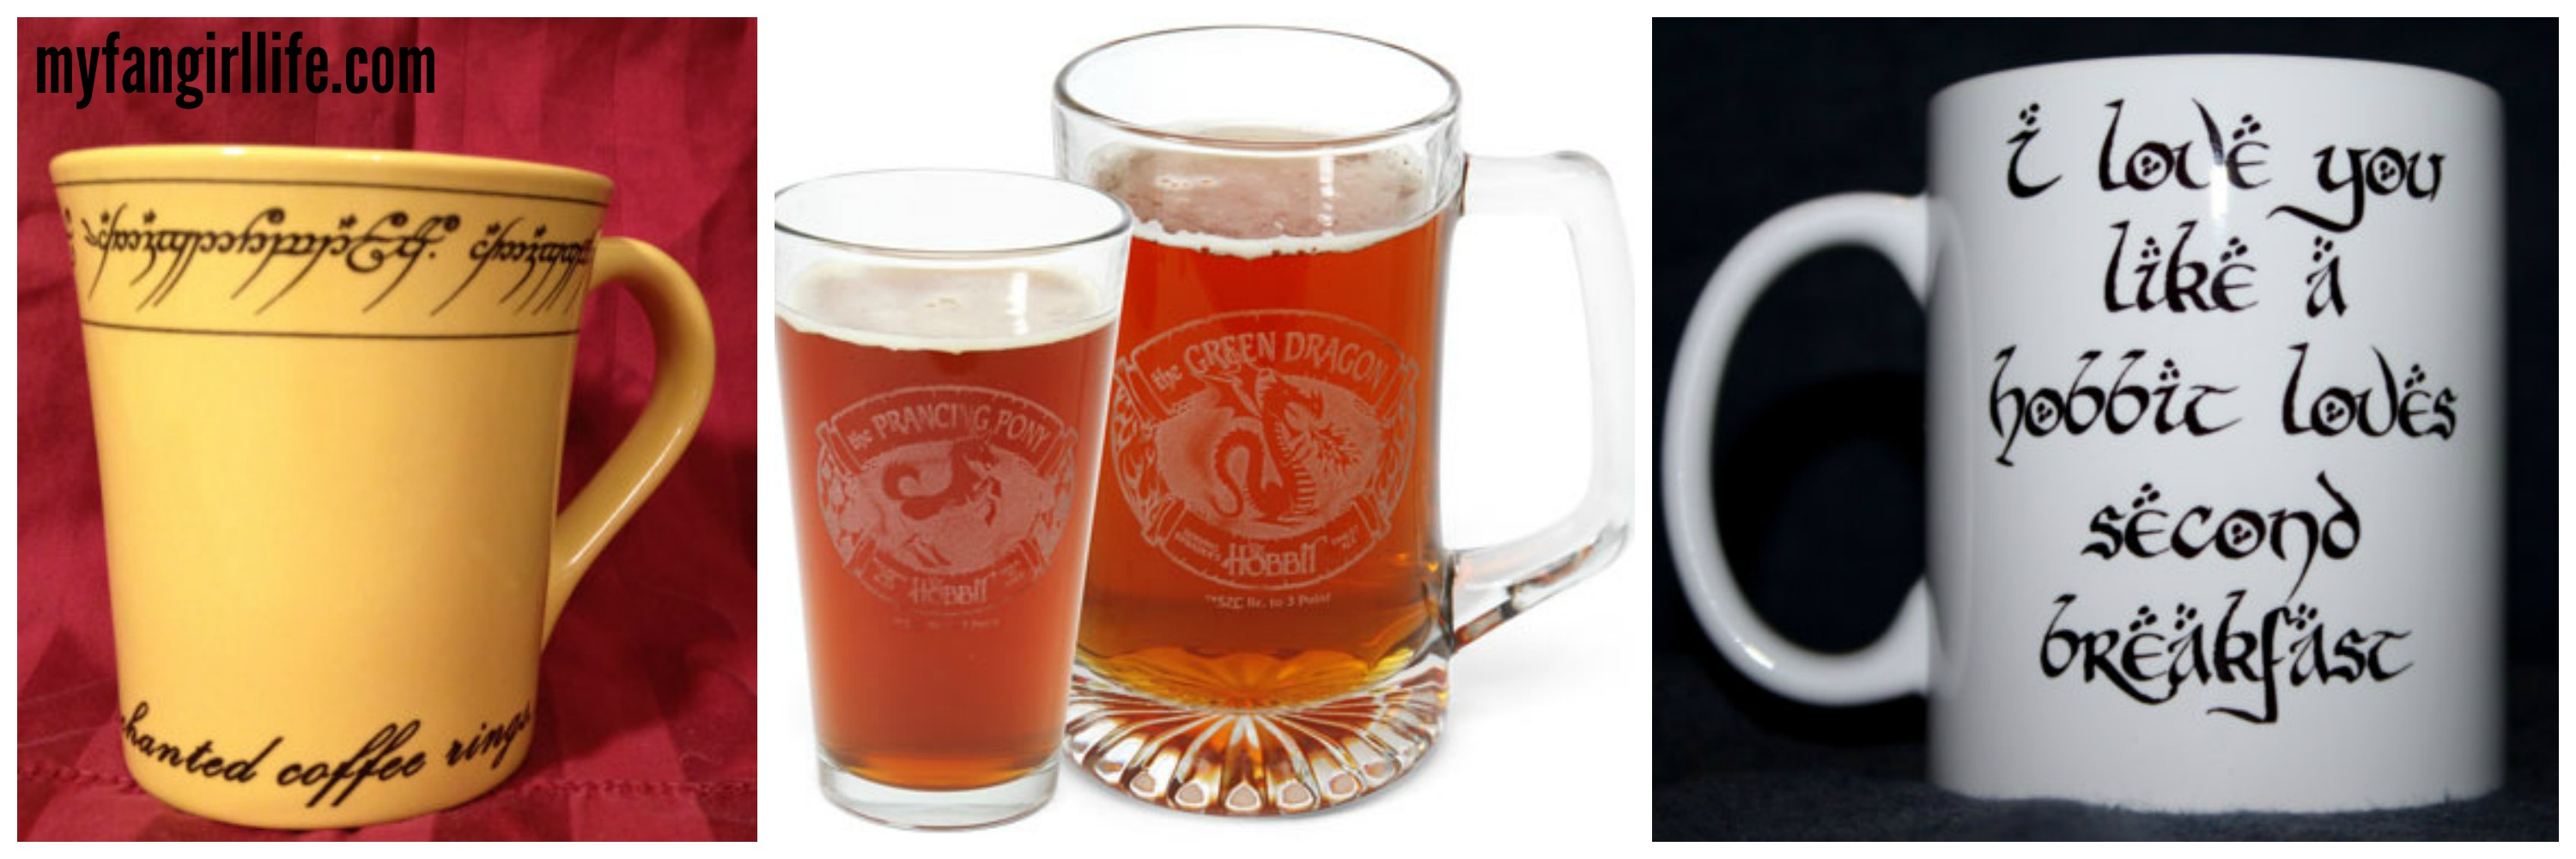 The hobbit lord of the rings glasses mugs